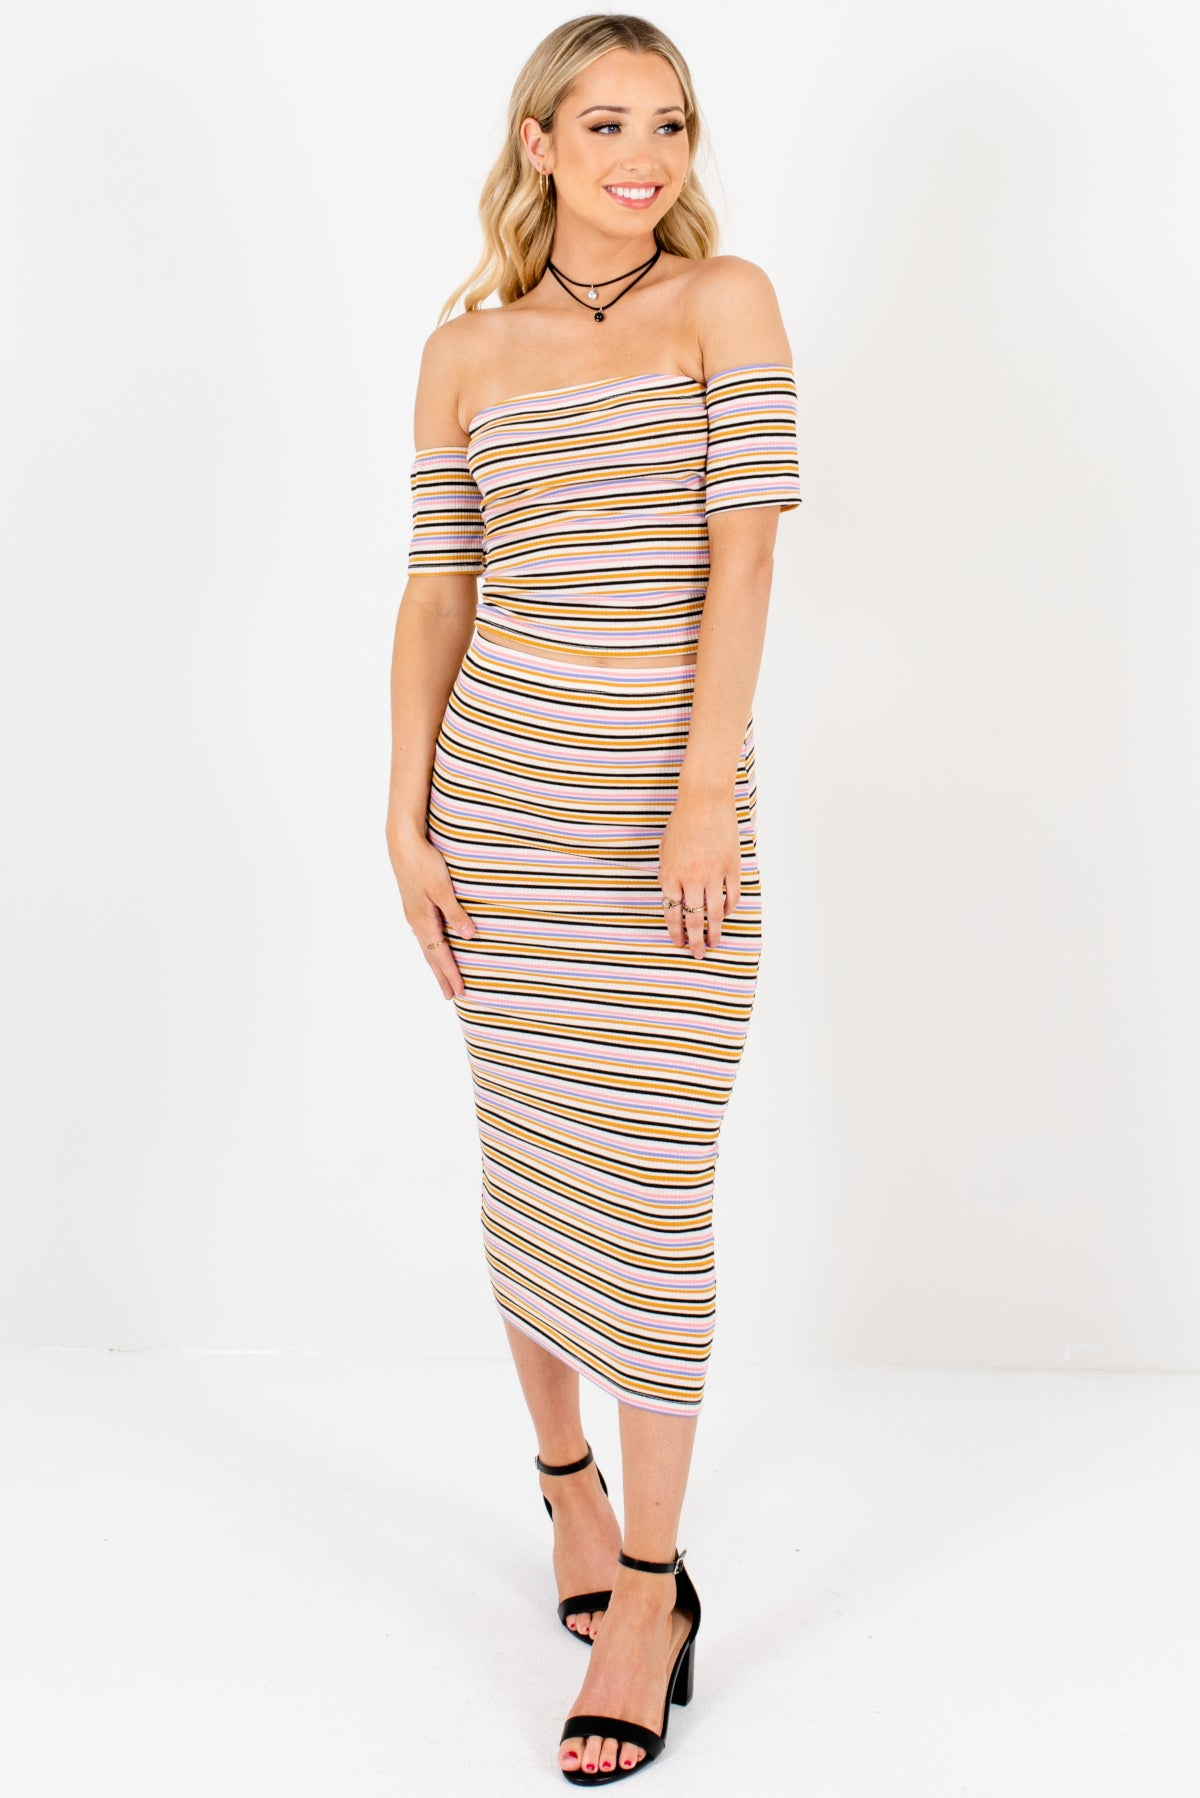 Mustard Multi Striped Boutique Two-Piece Sets for Women